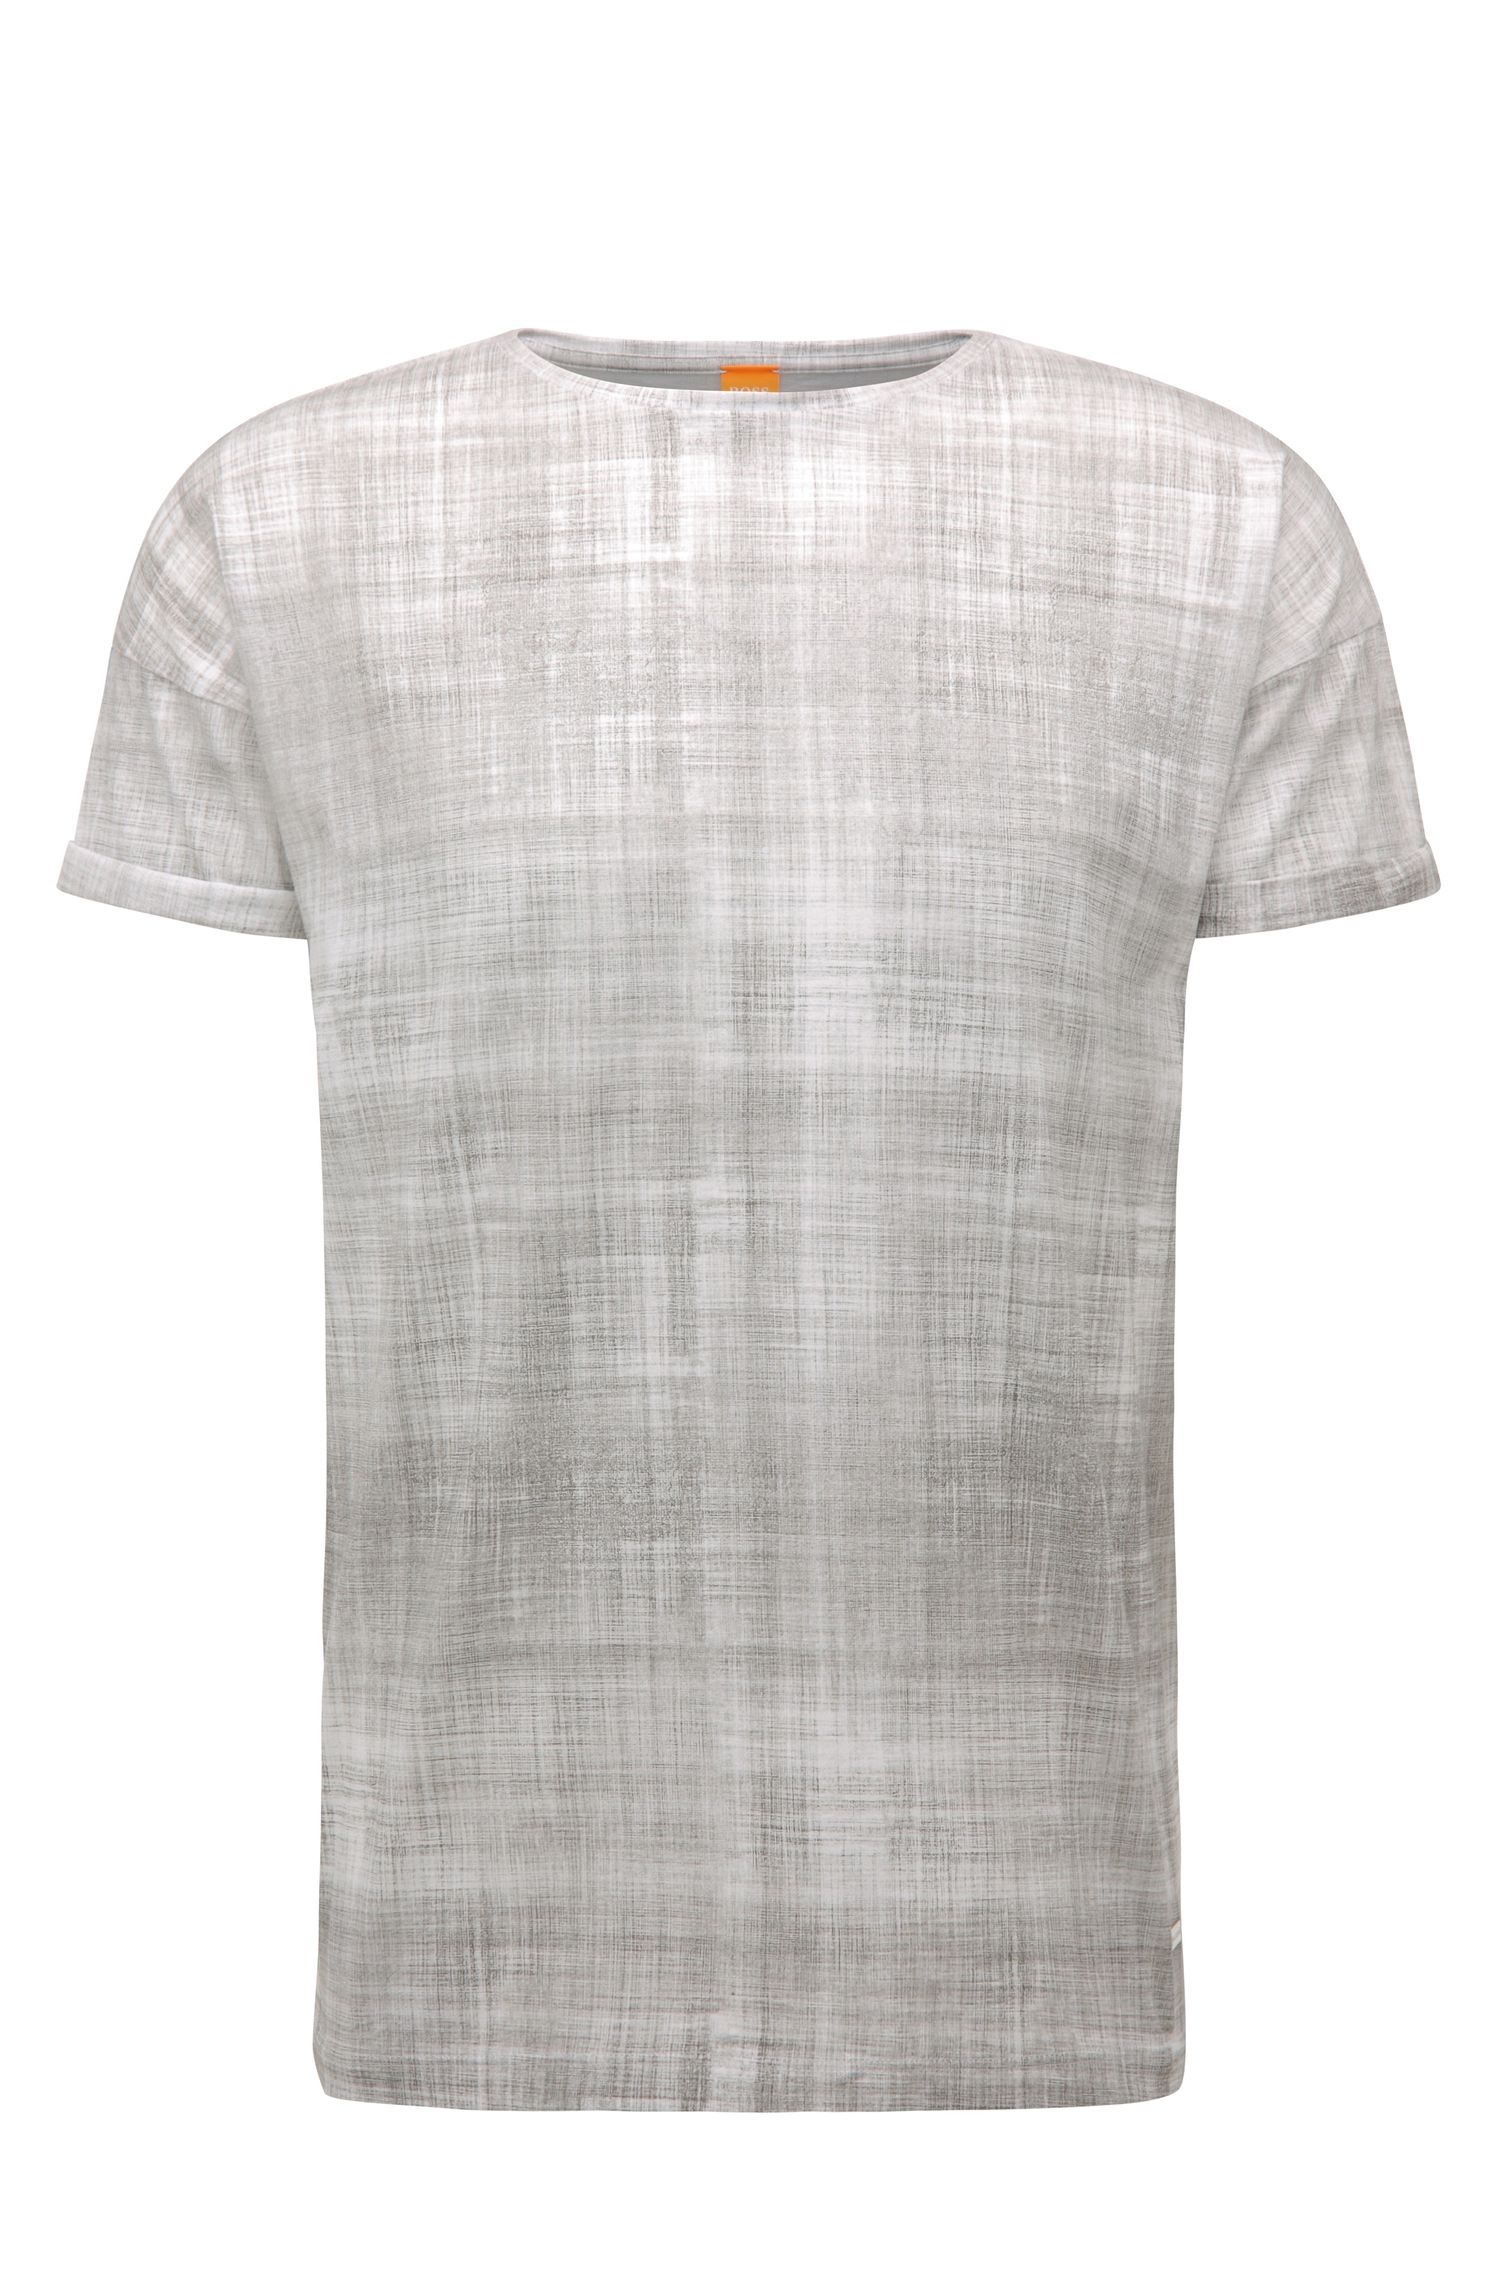 T-shirt imprimé Relaxed Fit en coton : « Tomotion »